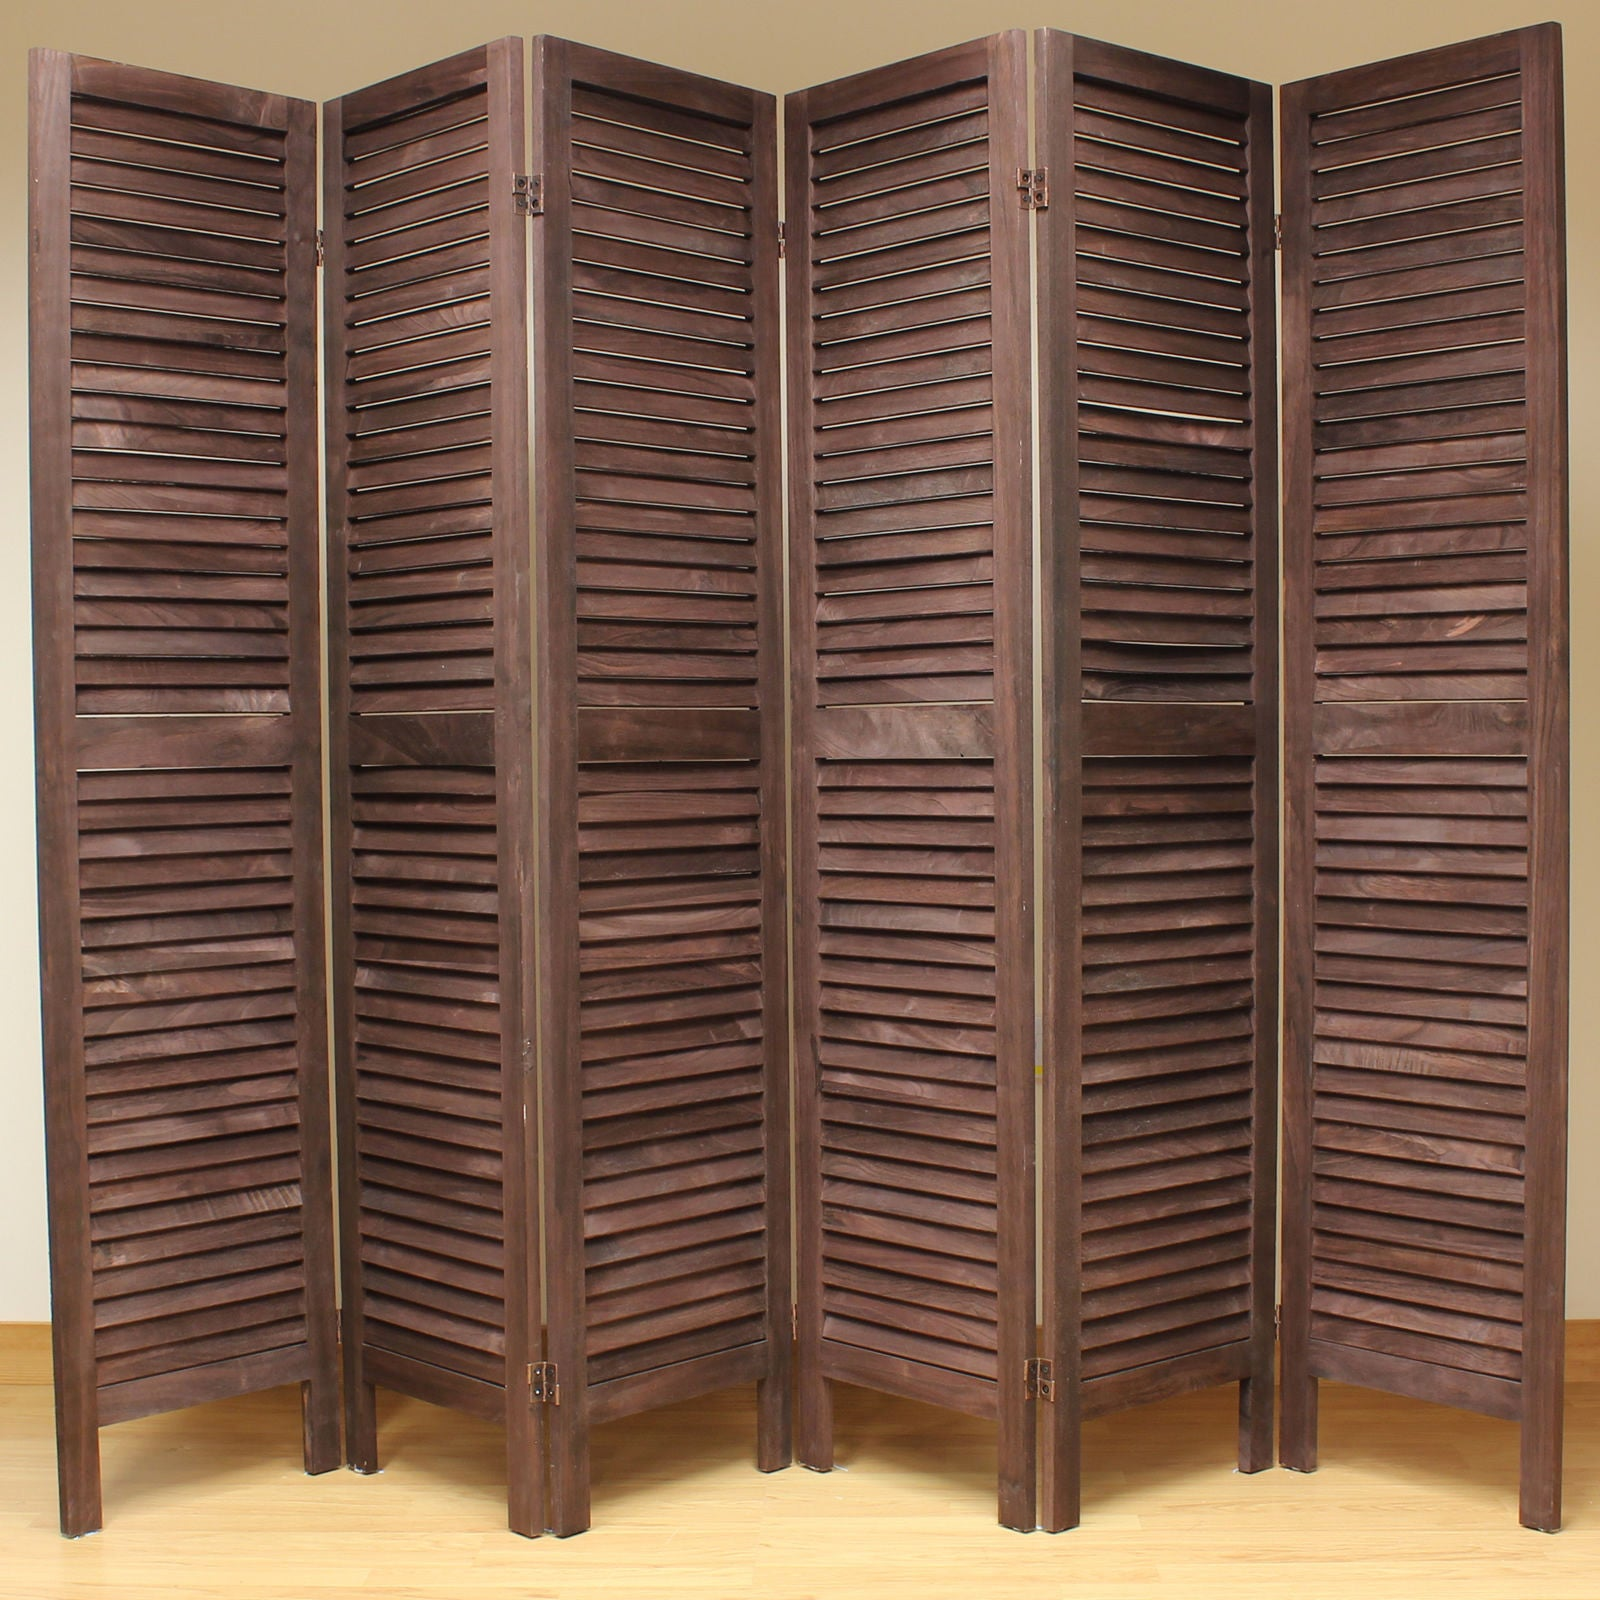 Low Wall Room Divider